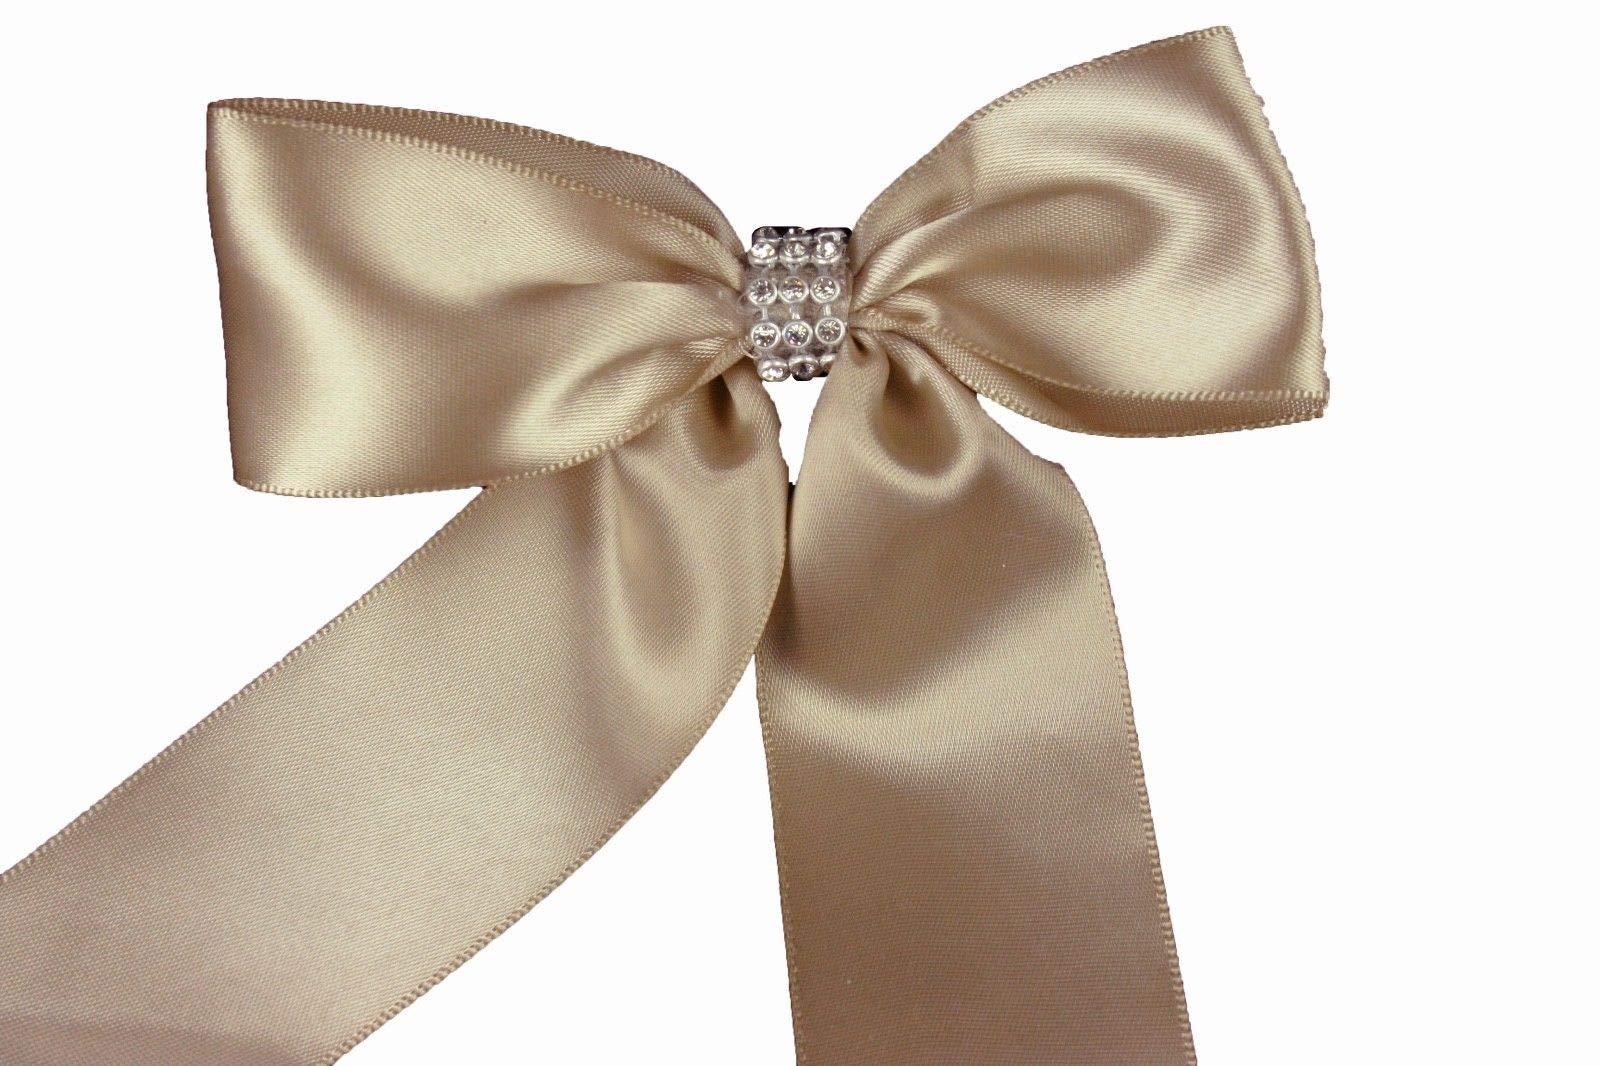 Bright Sun Toffee (Set of 10) Pre-Made 1-1/2'' Satin Bows Rhinestone Center Design with Wire Tie #DPNH